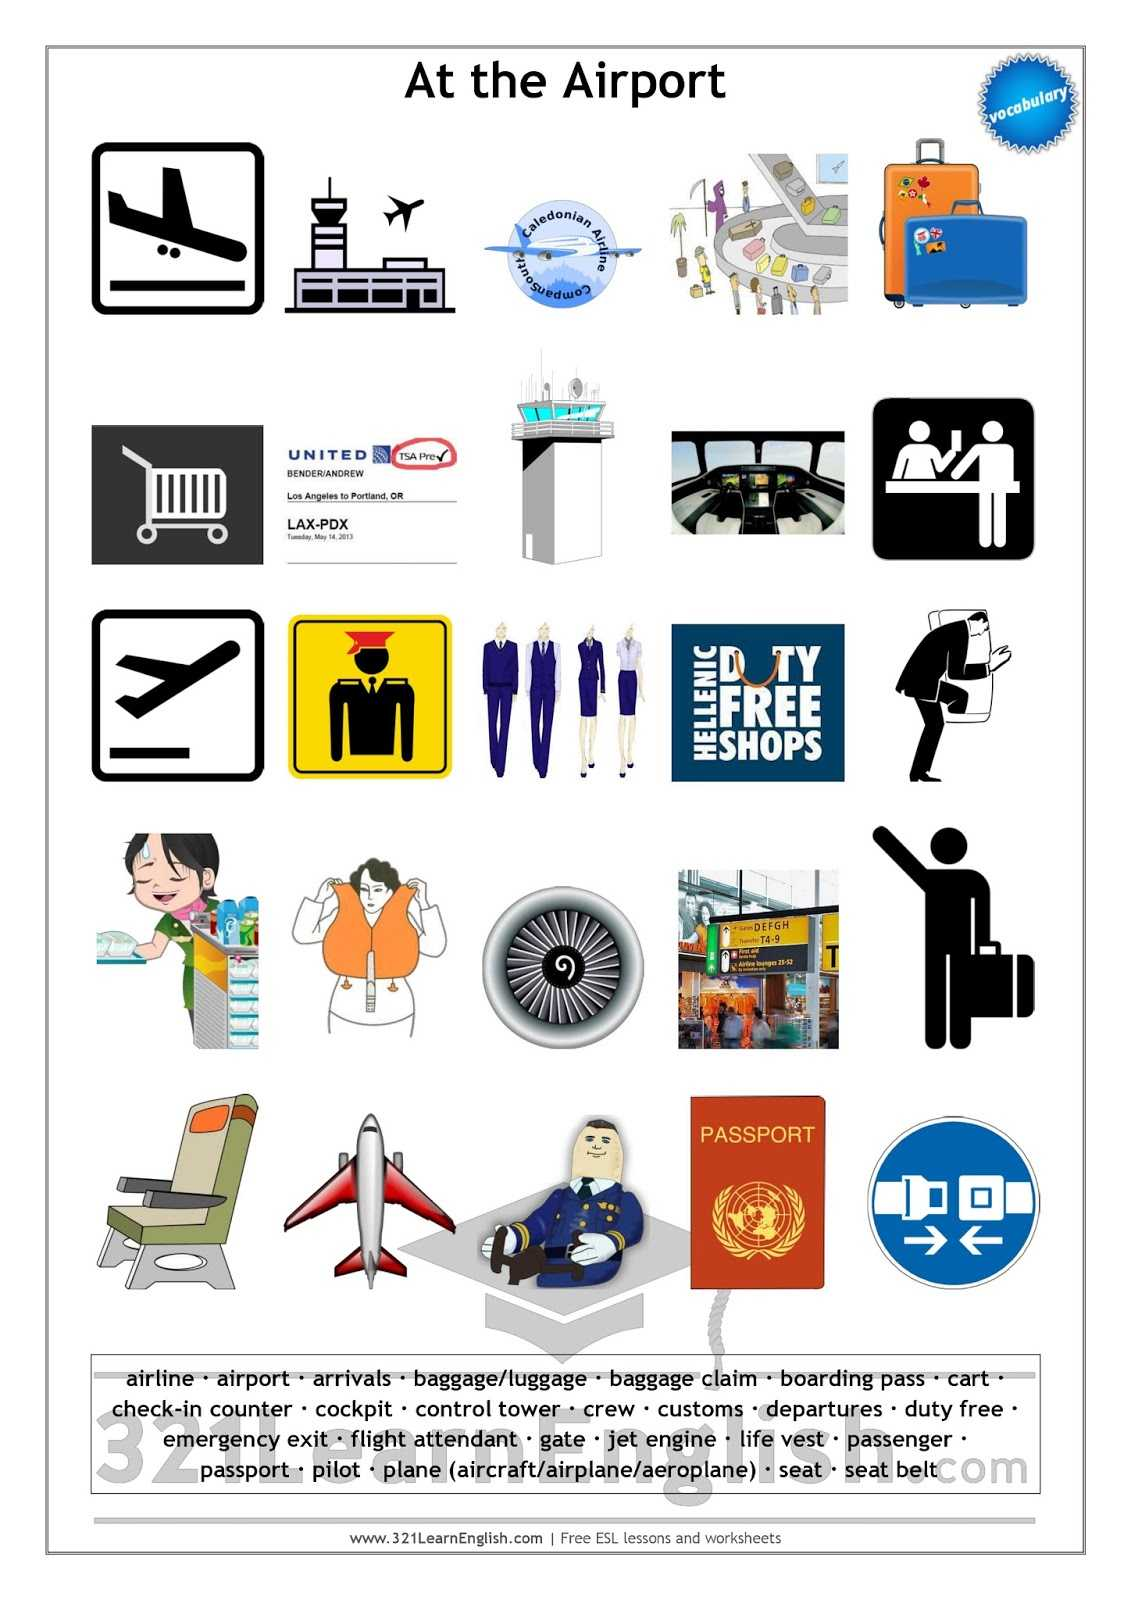 Free English Worksheets and 321 Learn English Vocabulary at the Airport Level B1